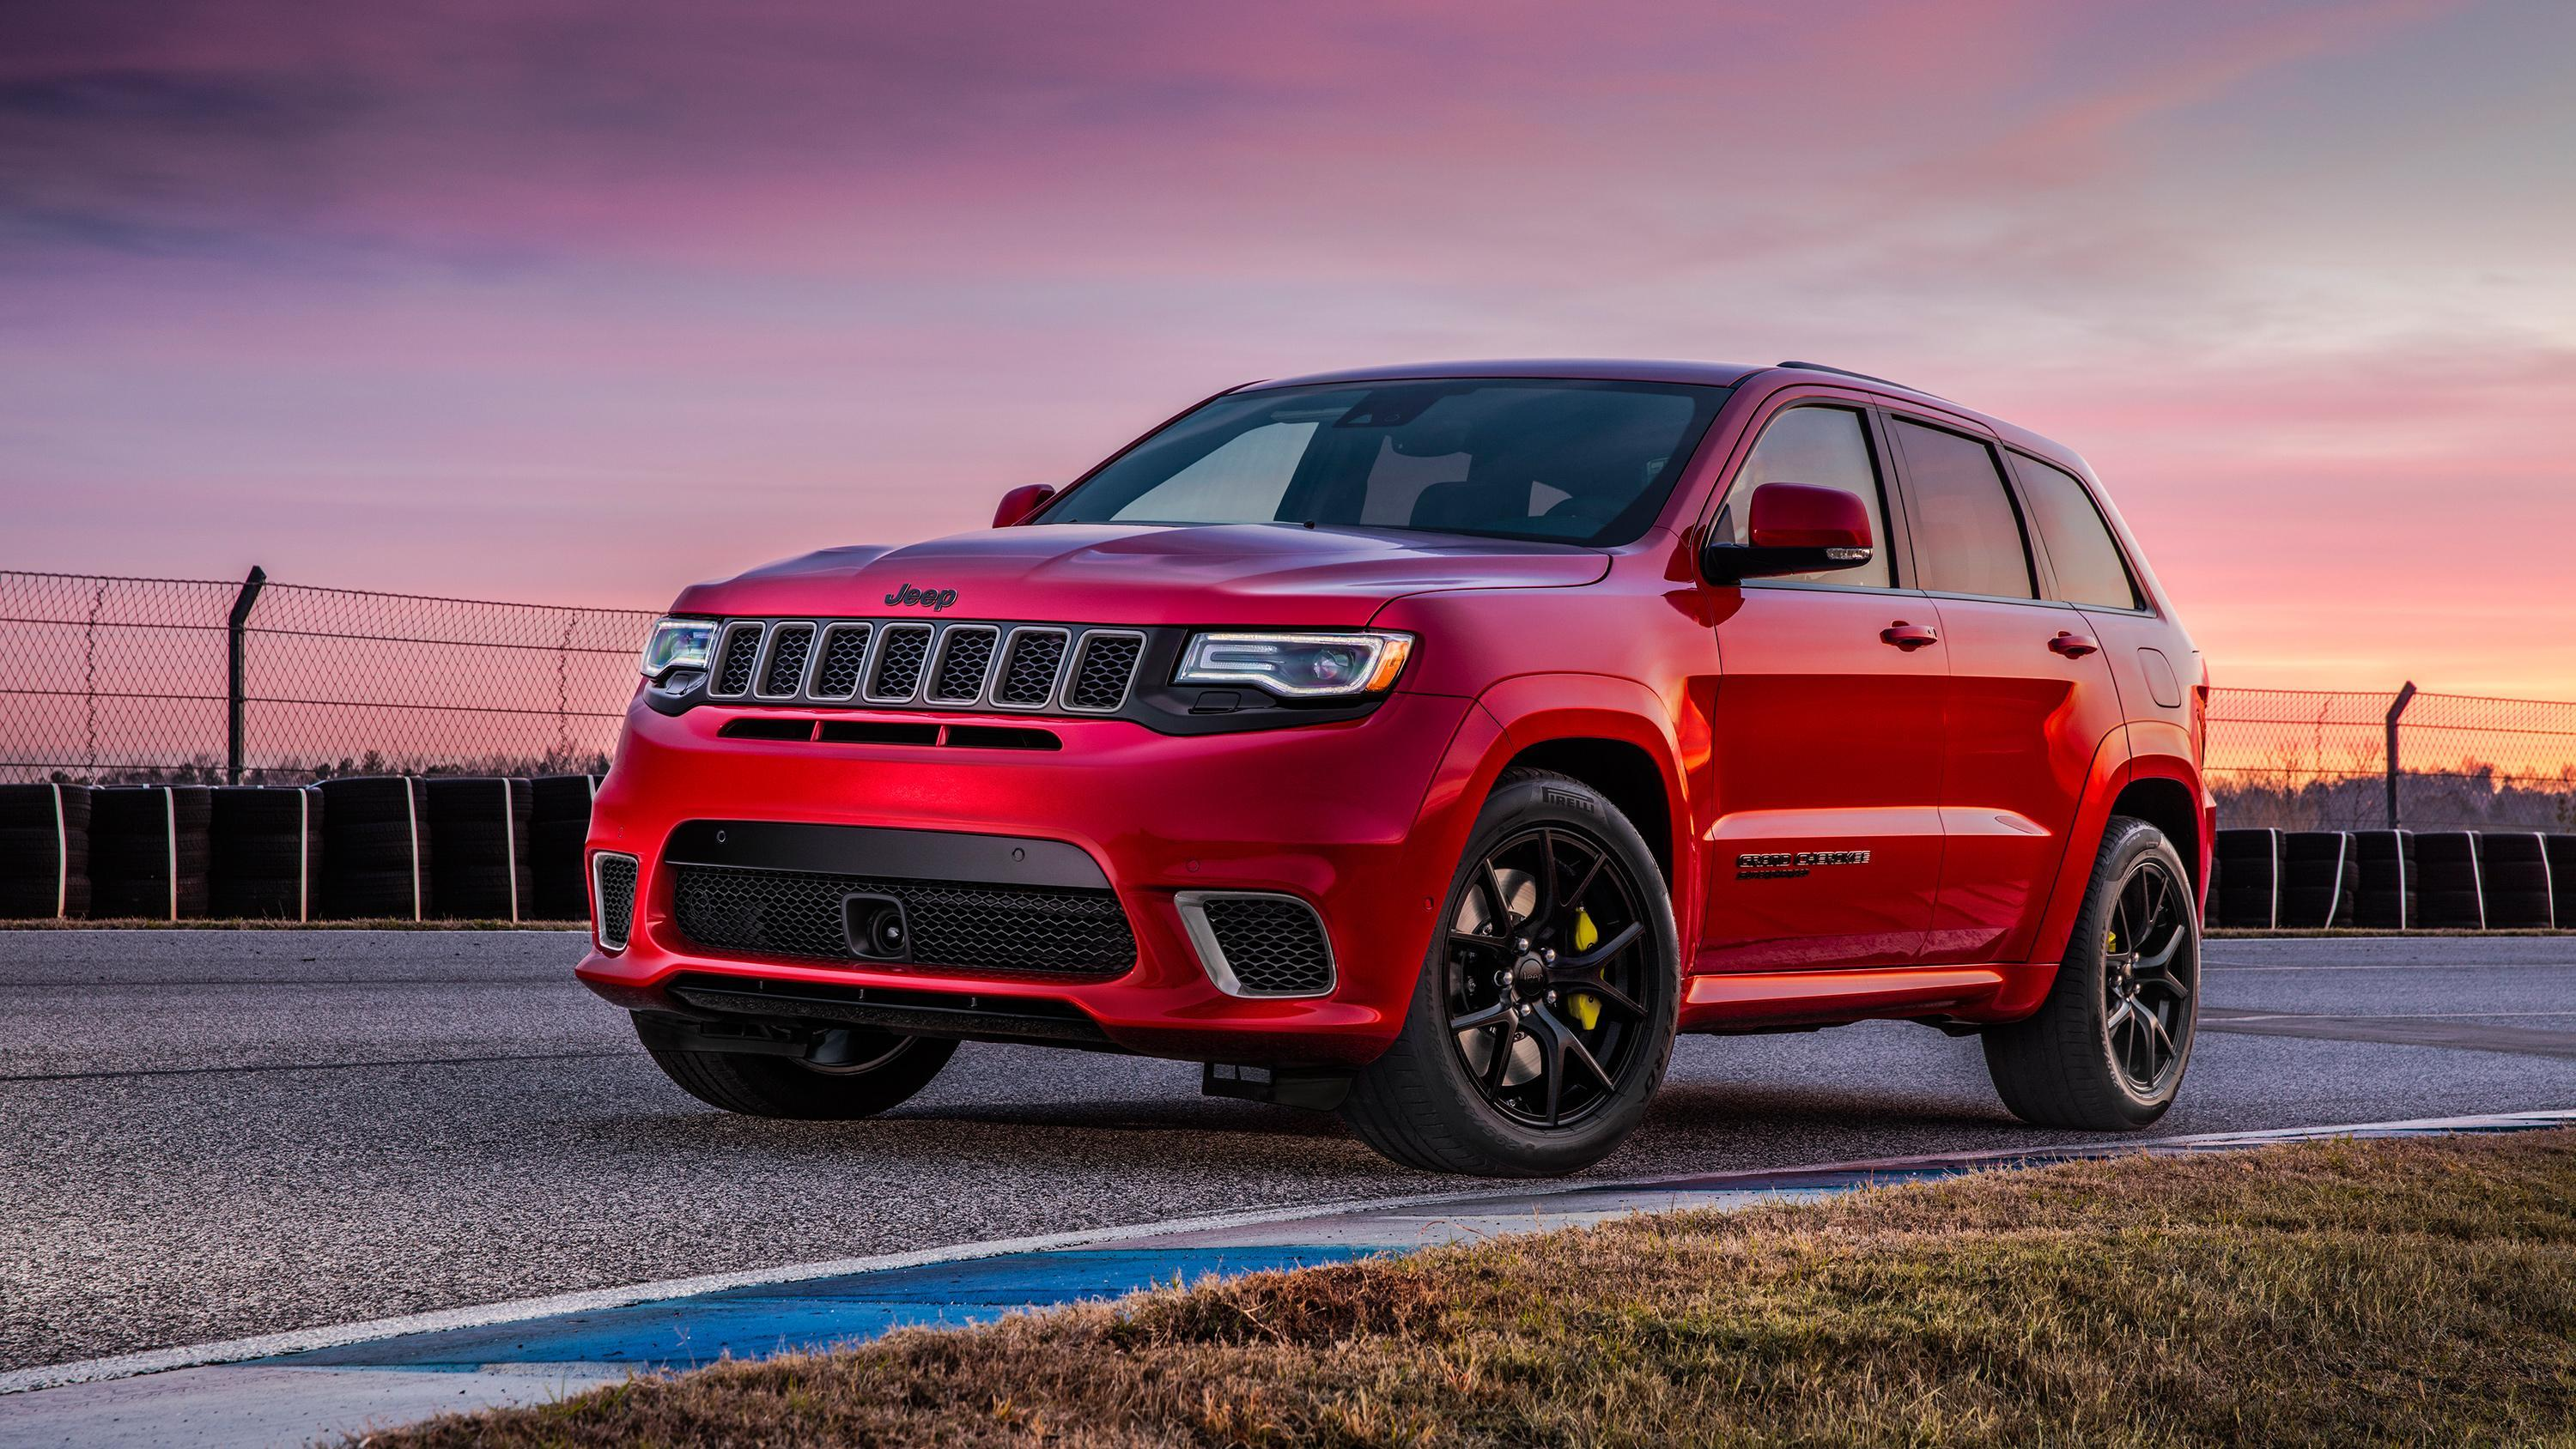 Srt8 Jeep Trackhawk Wallpaper